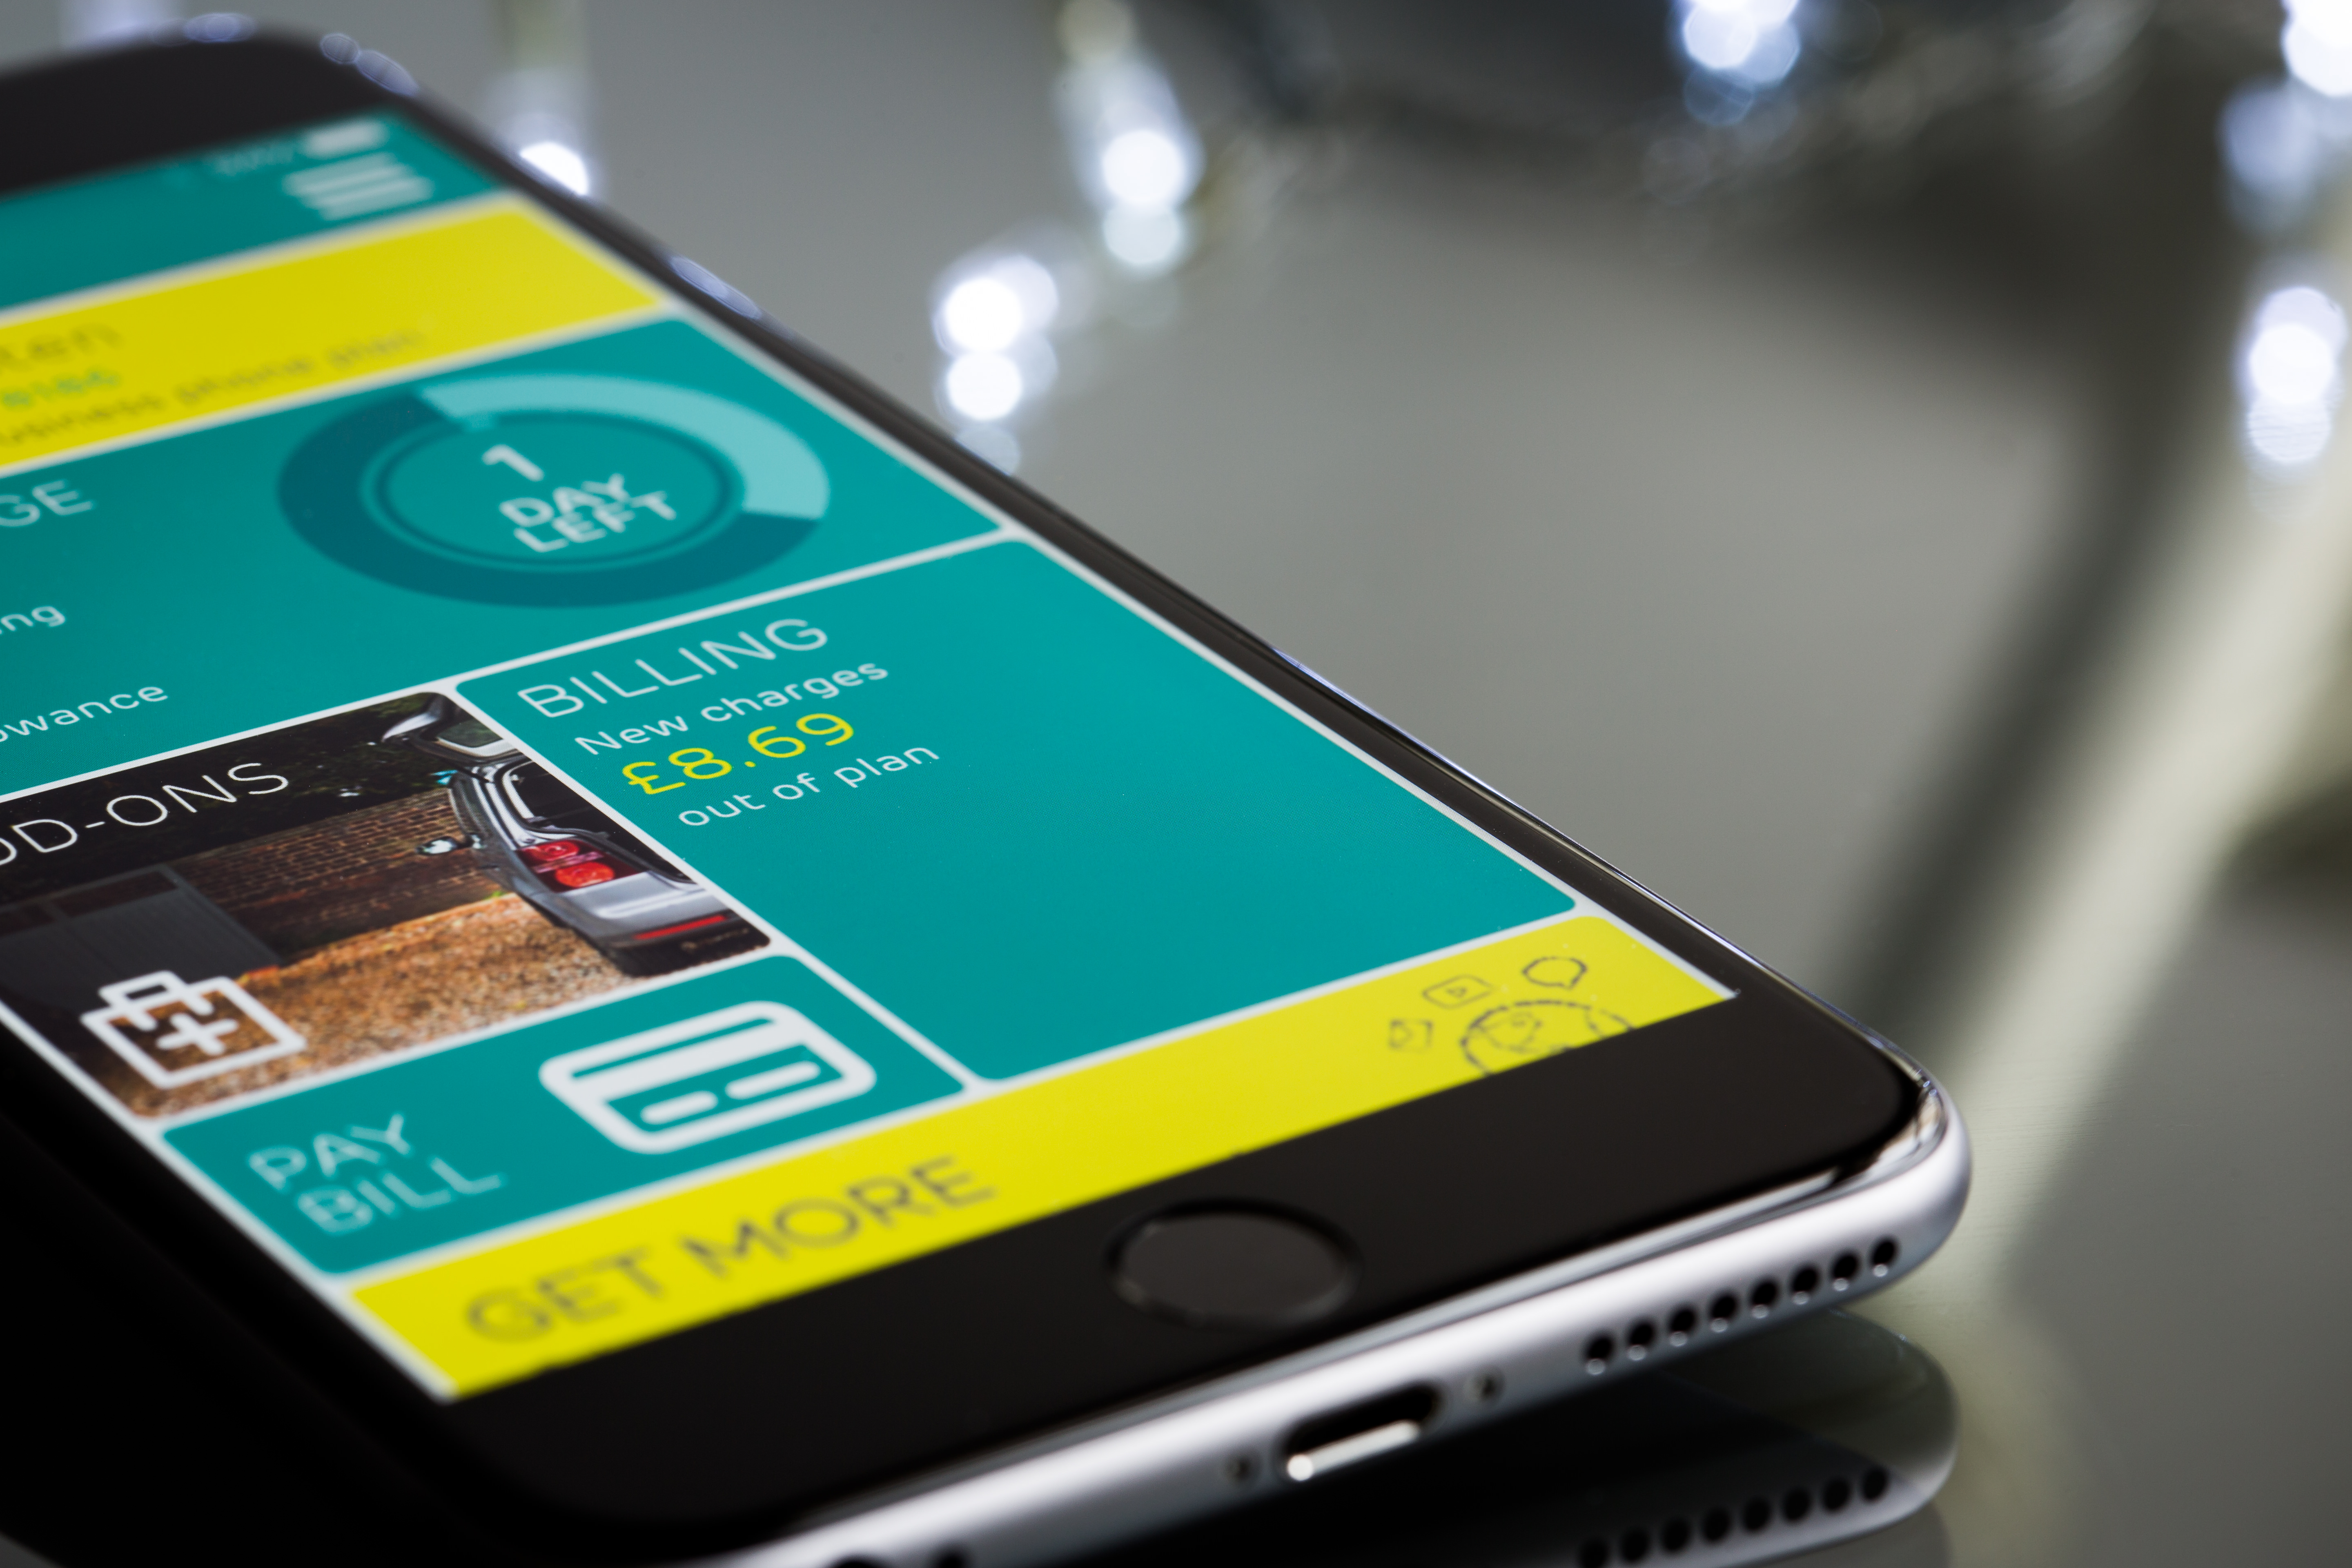 Mobile payments could be a bridge out of poverty